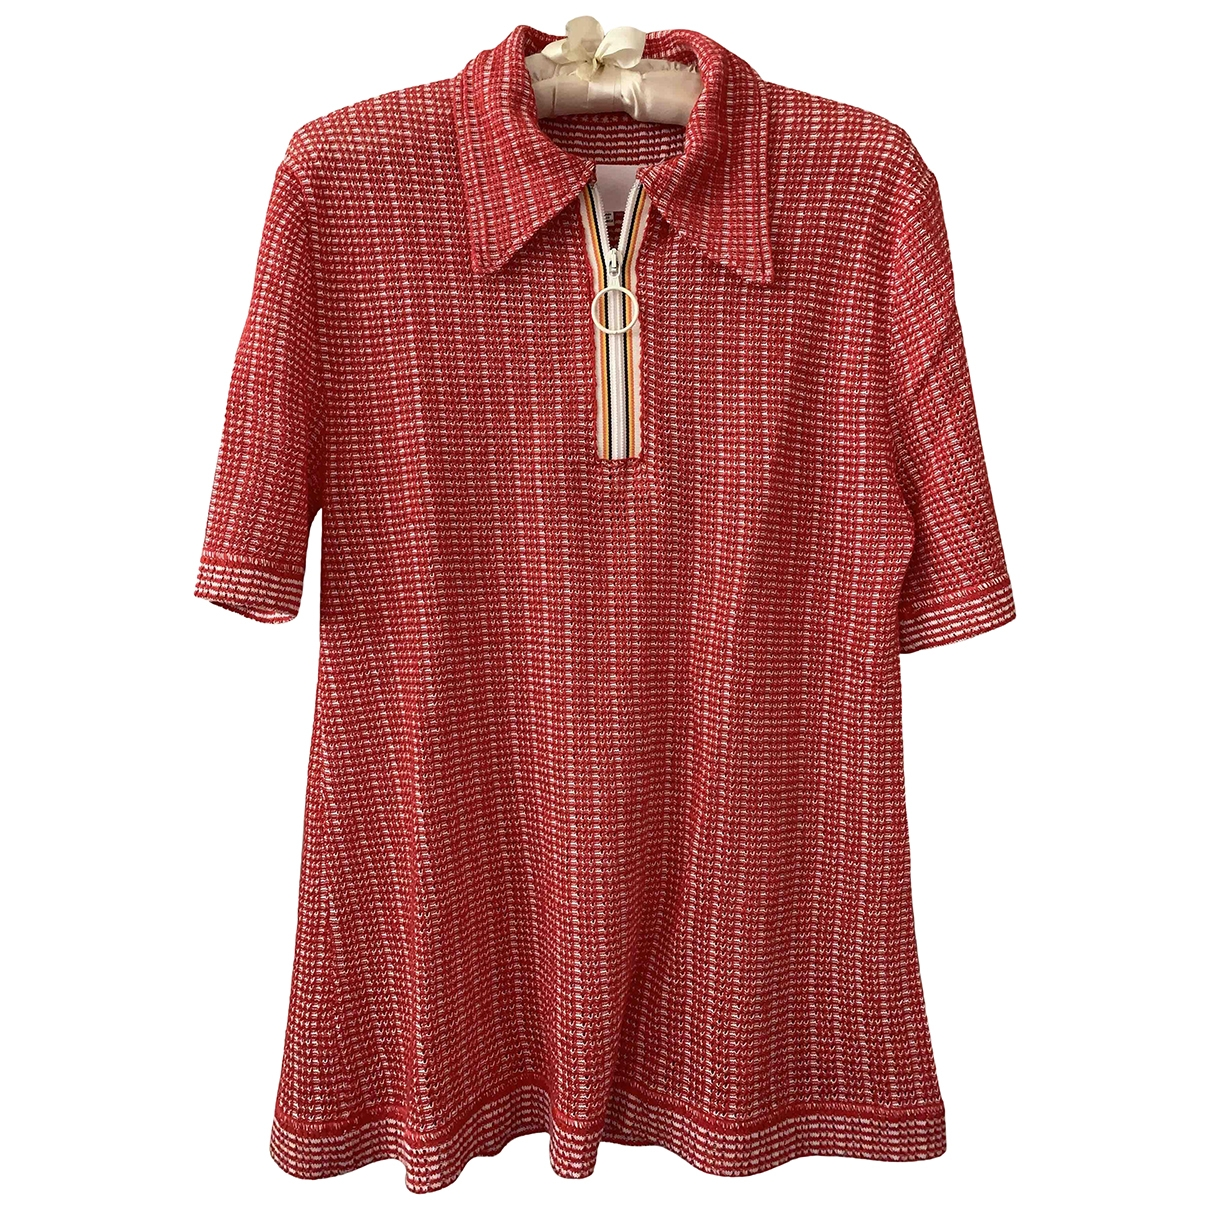 Maison Martin Margiela \N Red Cotton  top for Women 40 FR